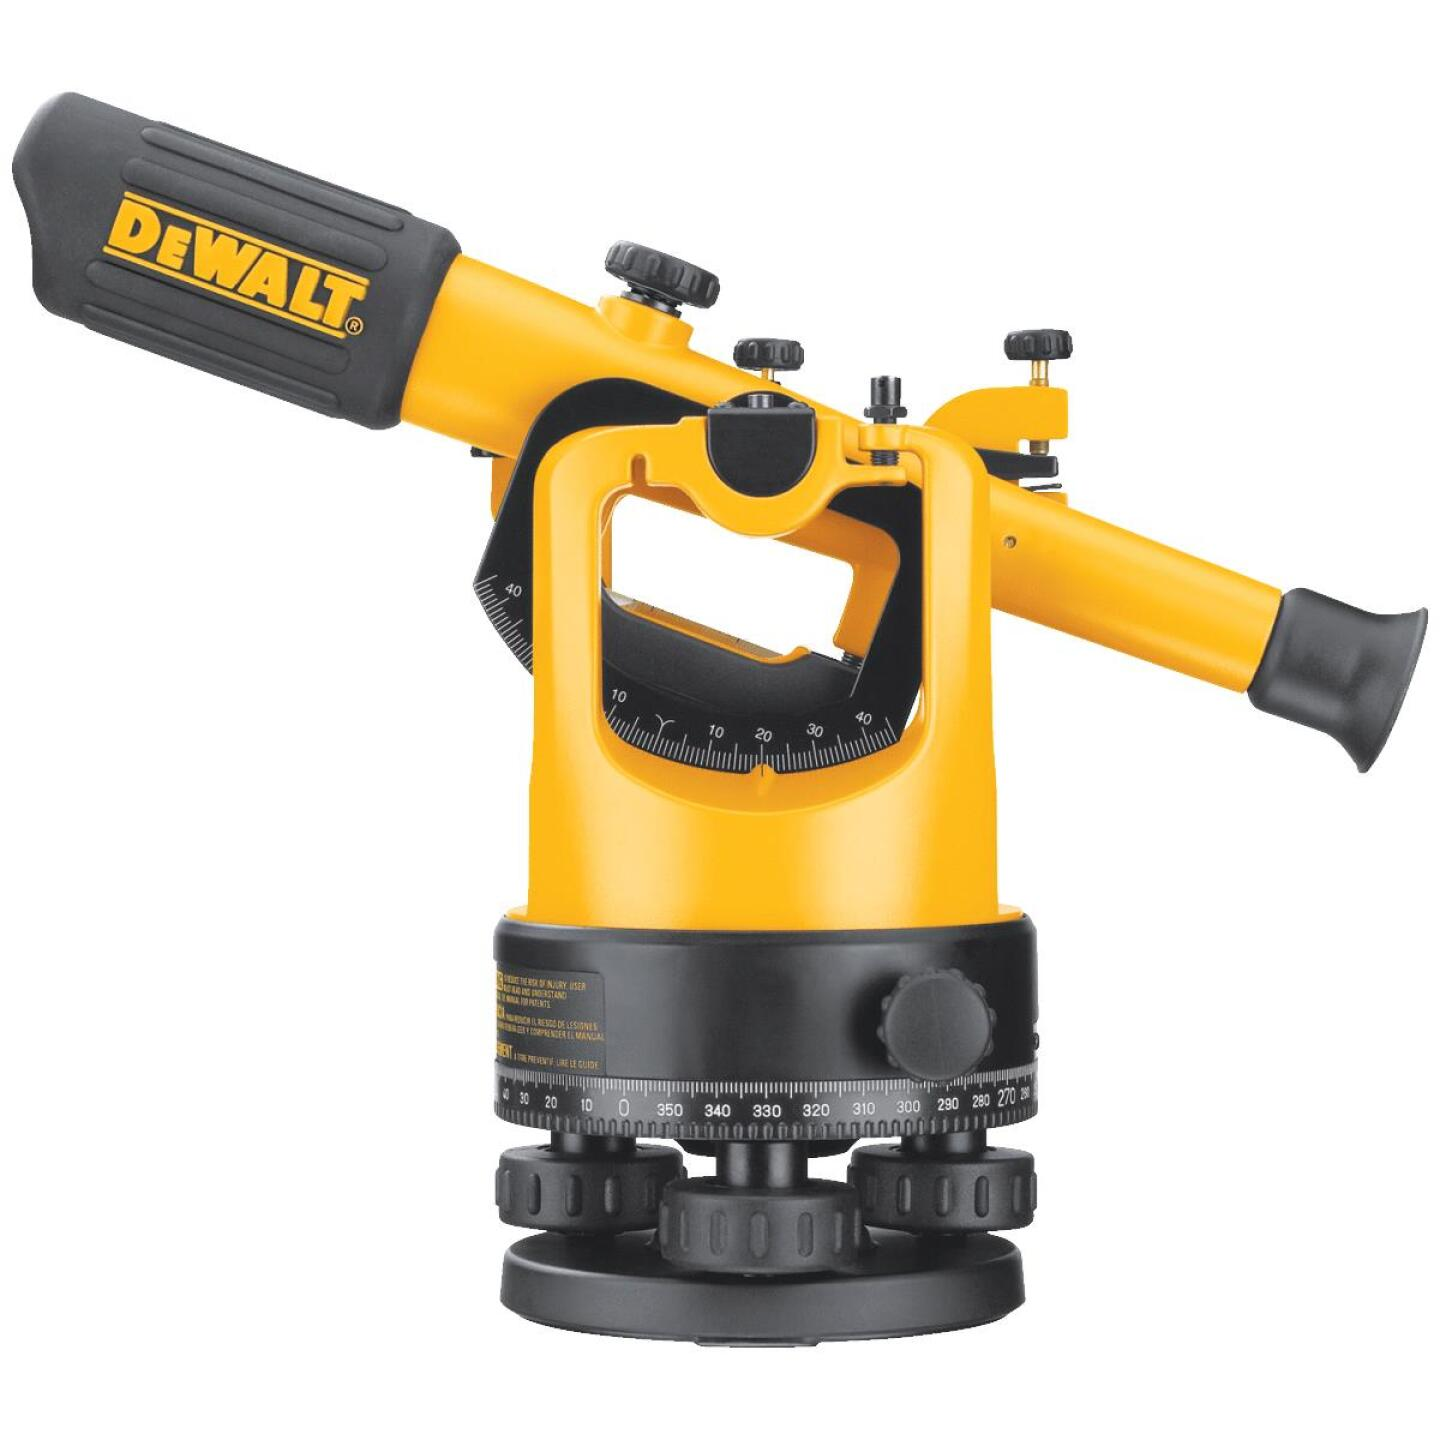 Dewalt 200 ft. Range Transit Level Image 1